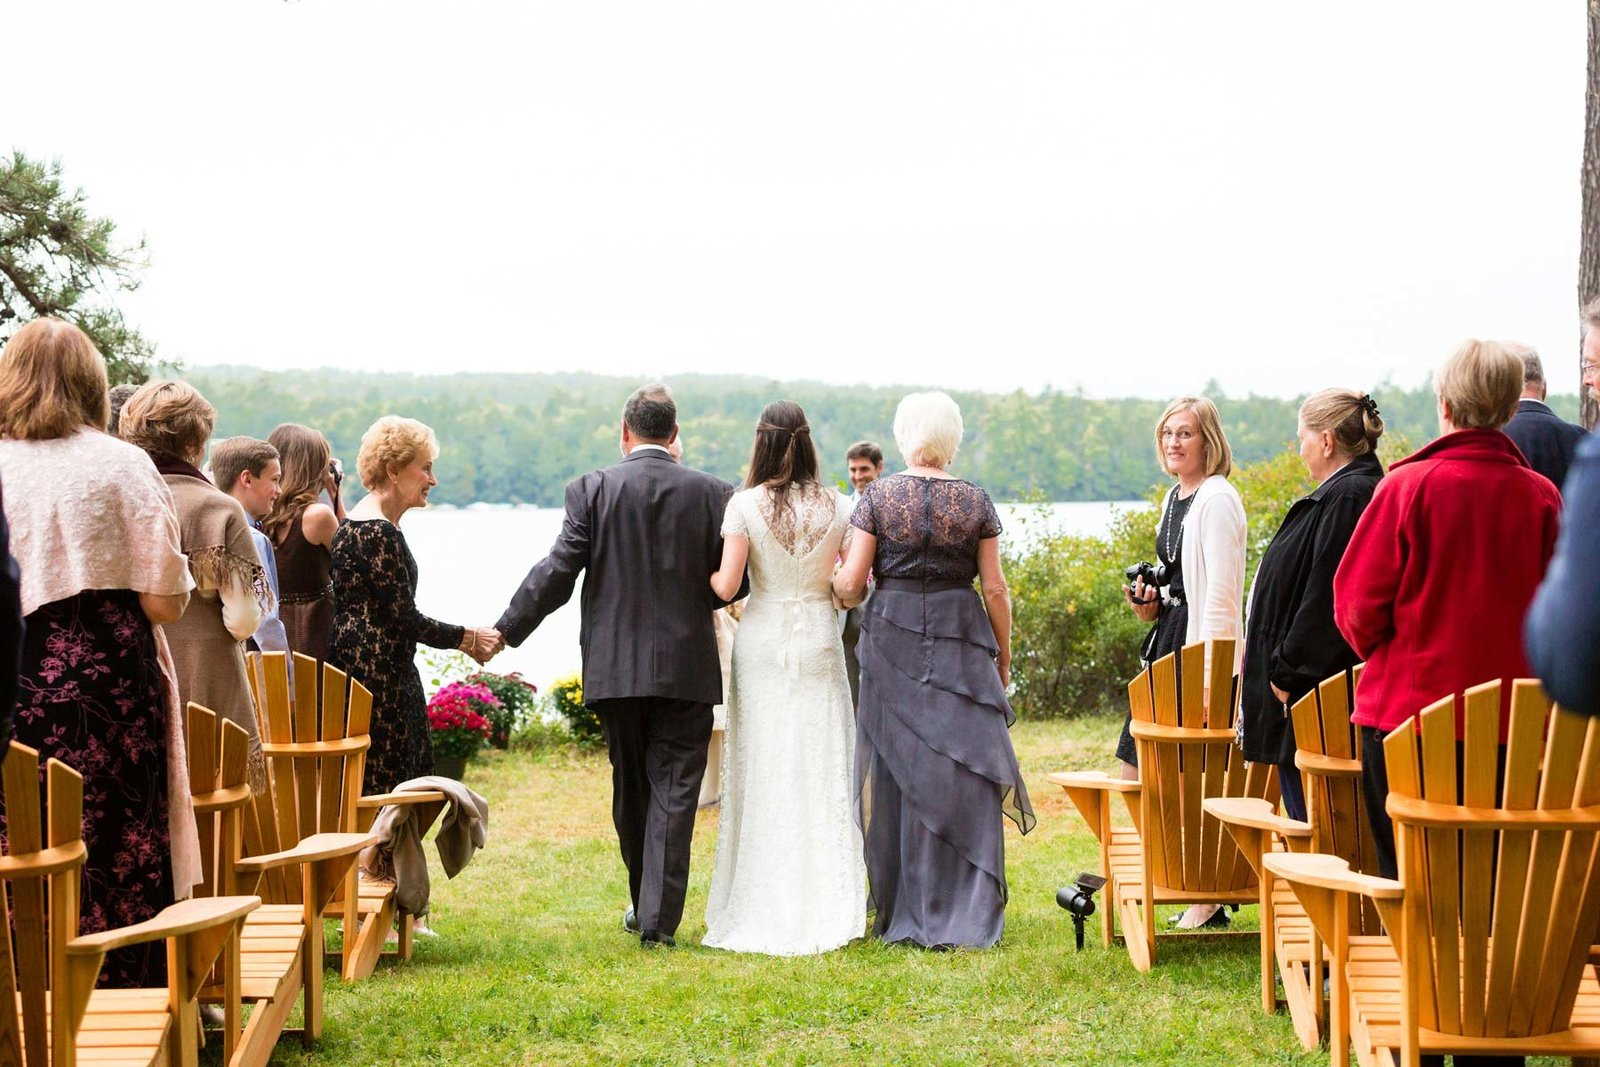 Bridgton Maine Wedding Photographer Ceremony Image